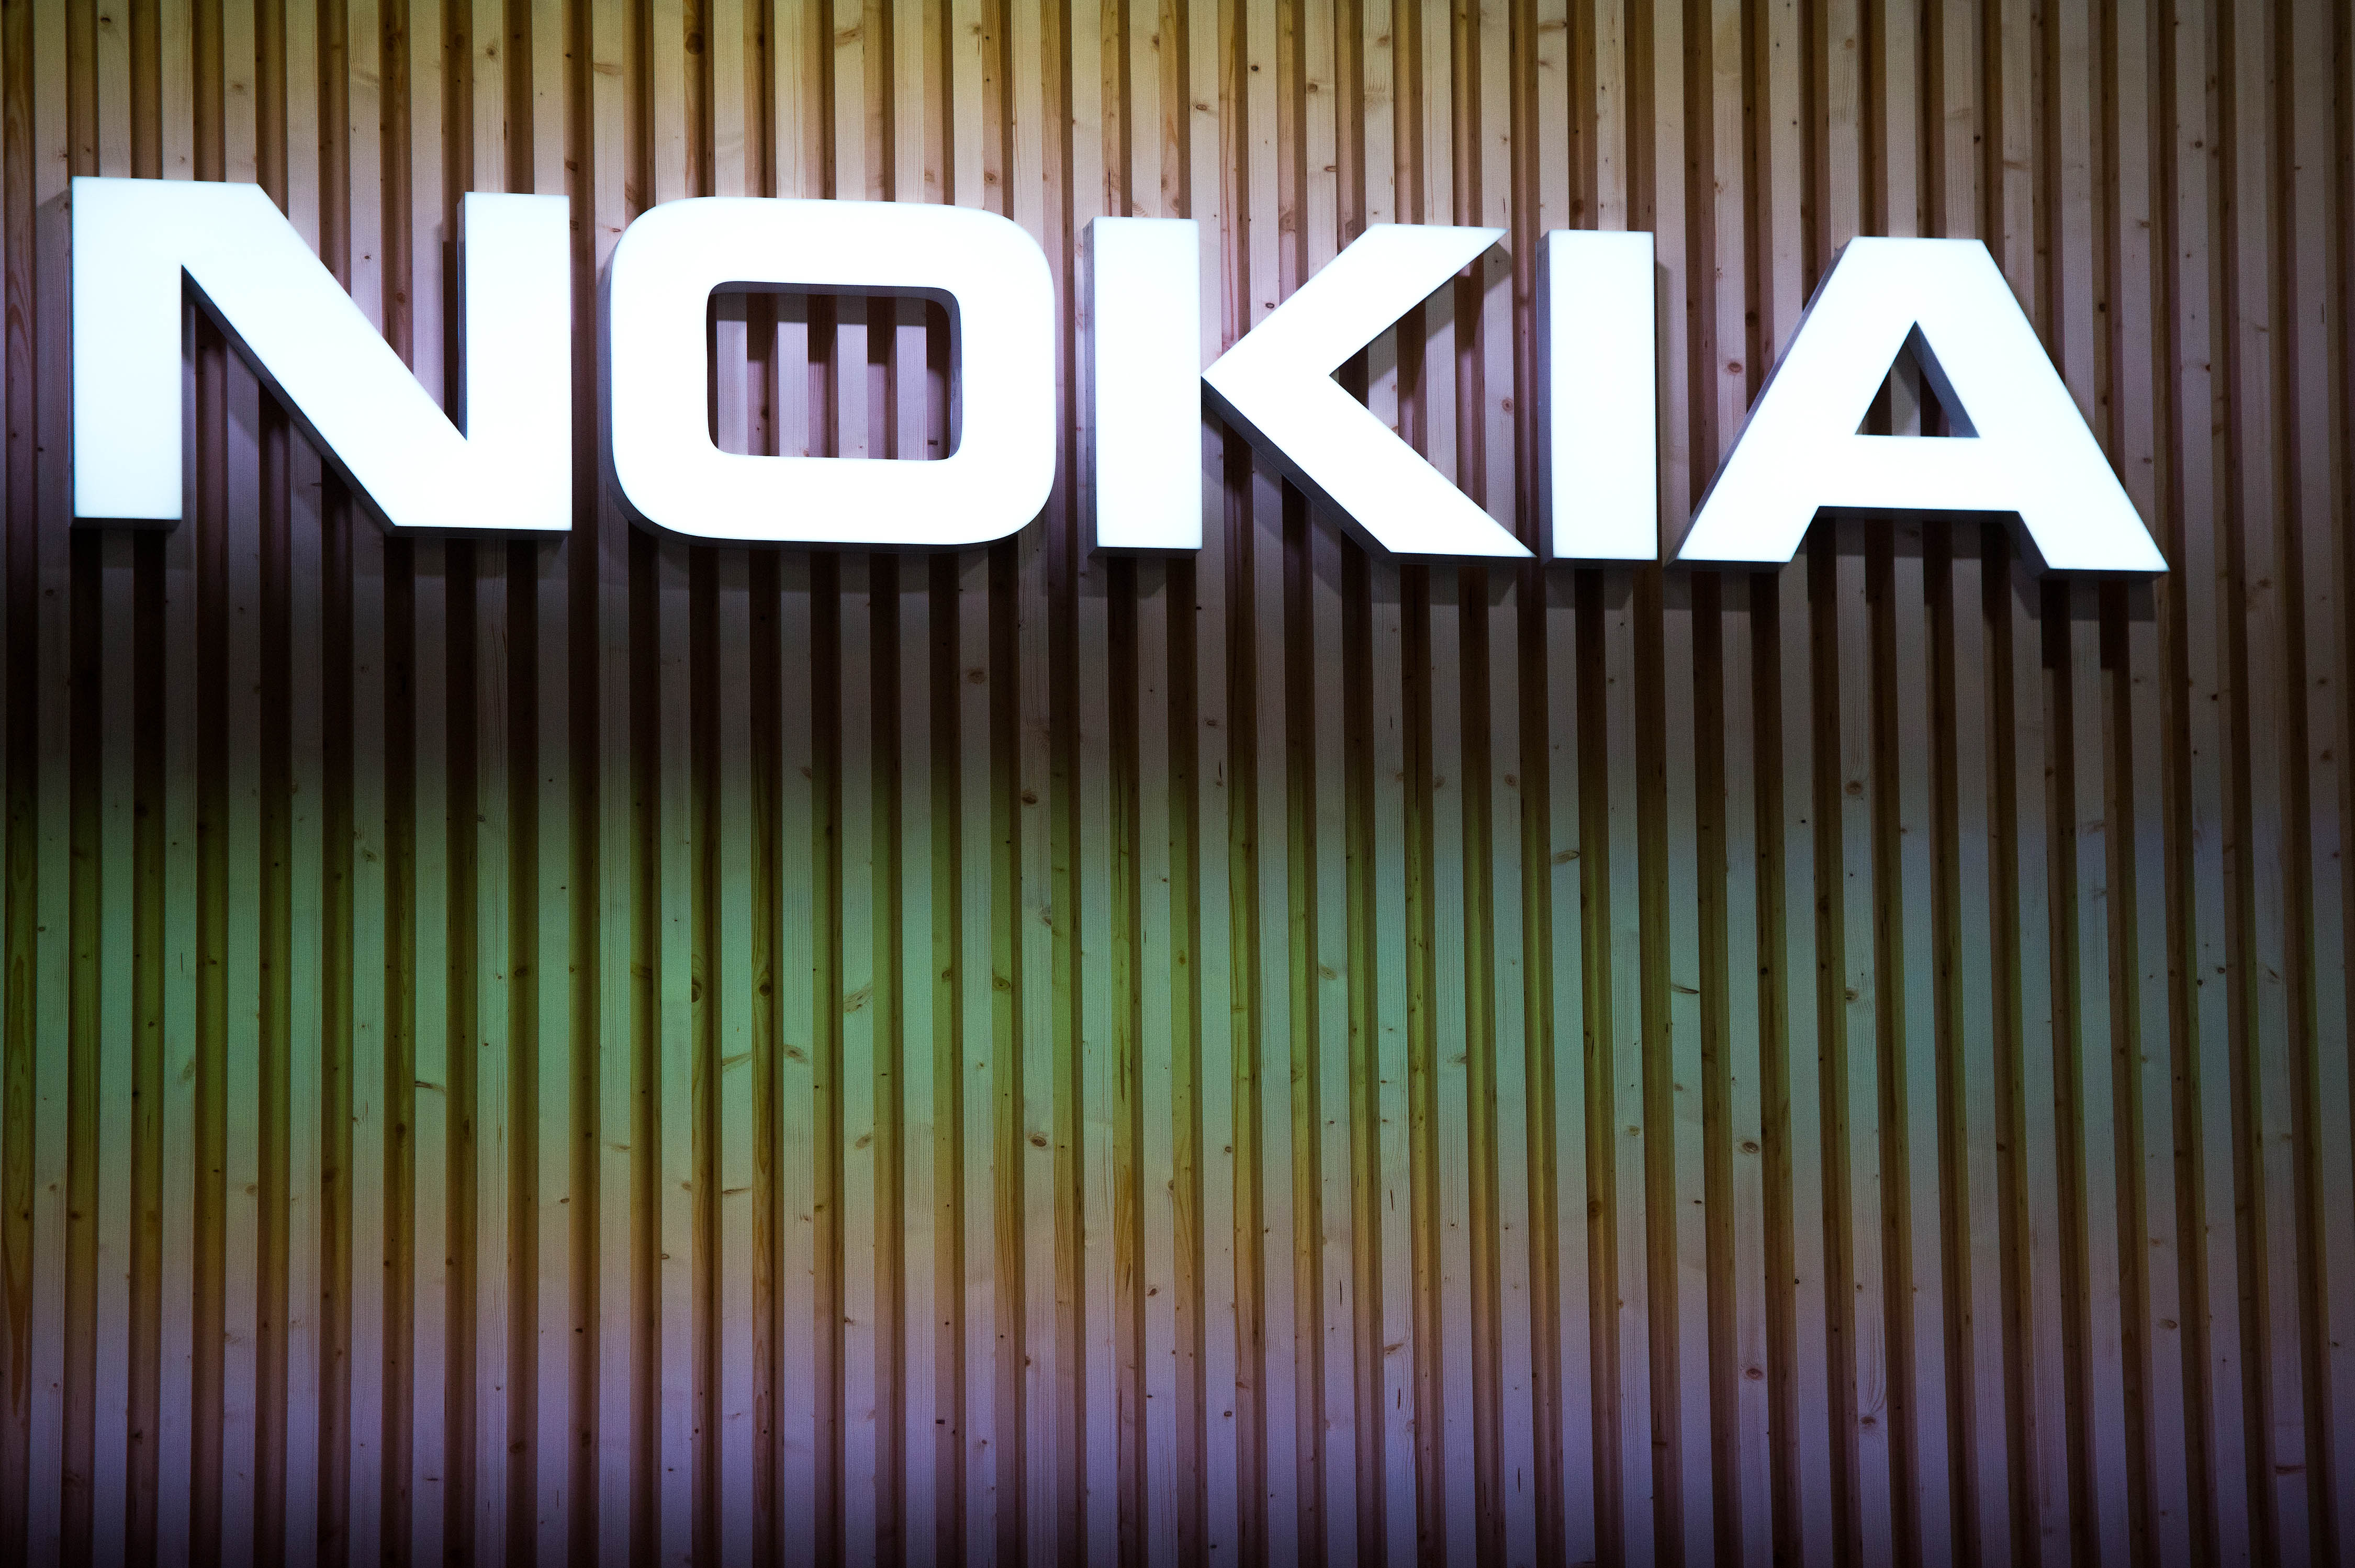 BARCELONA, SPAIN - MARCH 03:  A logo sits illuminated outside the Nokia pavilion during the second day of the Mobile World Congress 2015 at the Fira Gran Via complex on March 3, 2015 in Barcelona, Spain. The annual Mobile World Congress hosts some of the wold's largest communication companies, with many unveiling their latest phones and wearables gadgets.  (Photo by David Ramos/Getty Images)